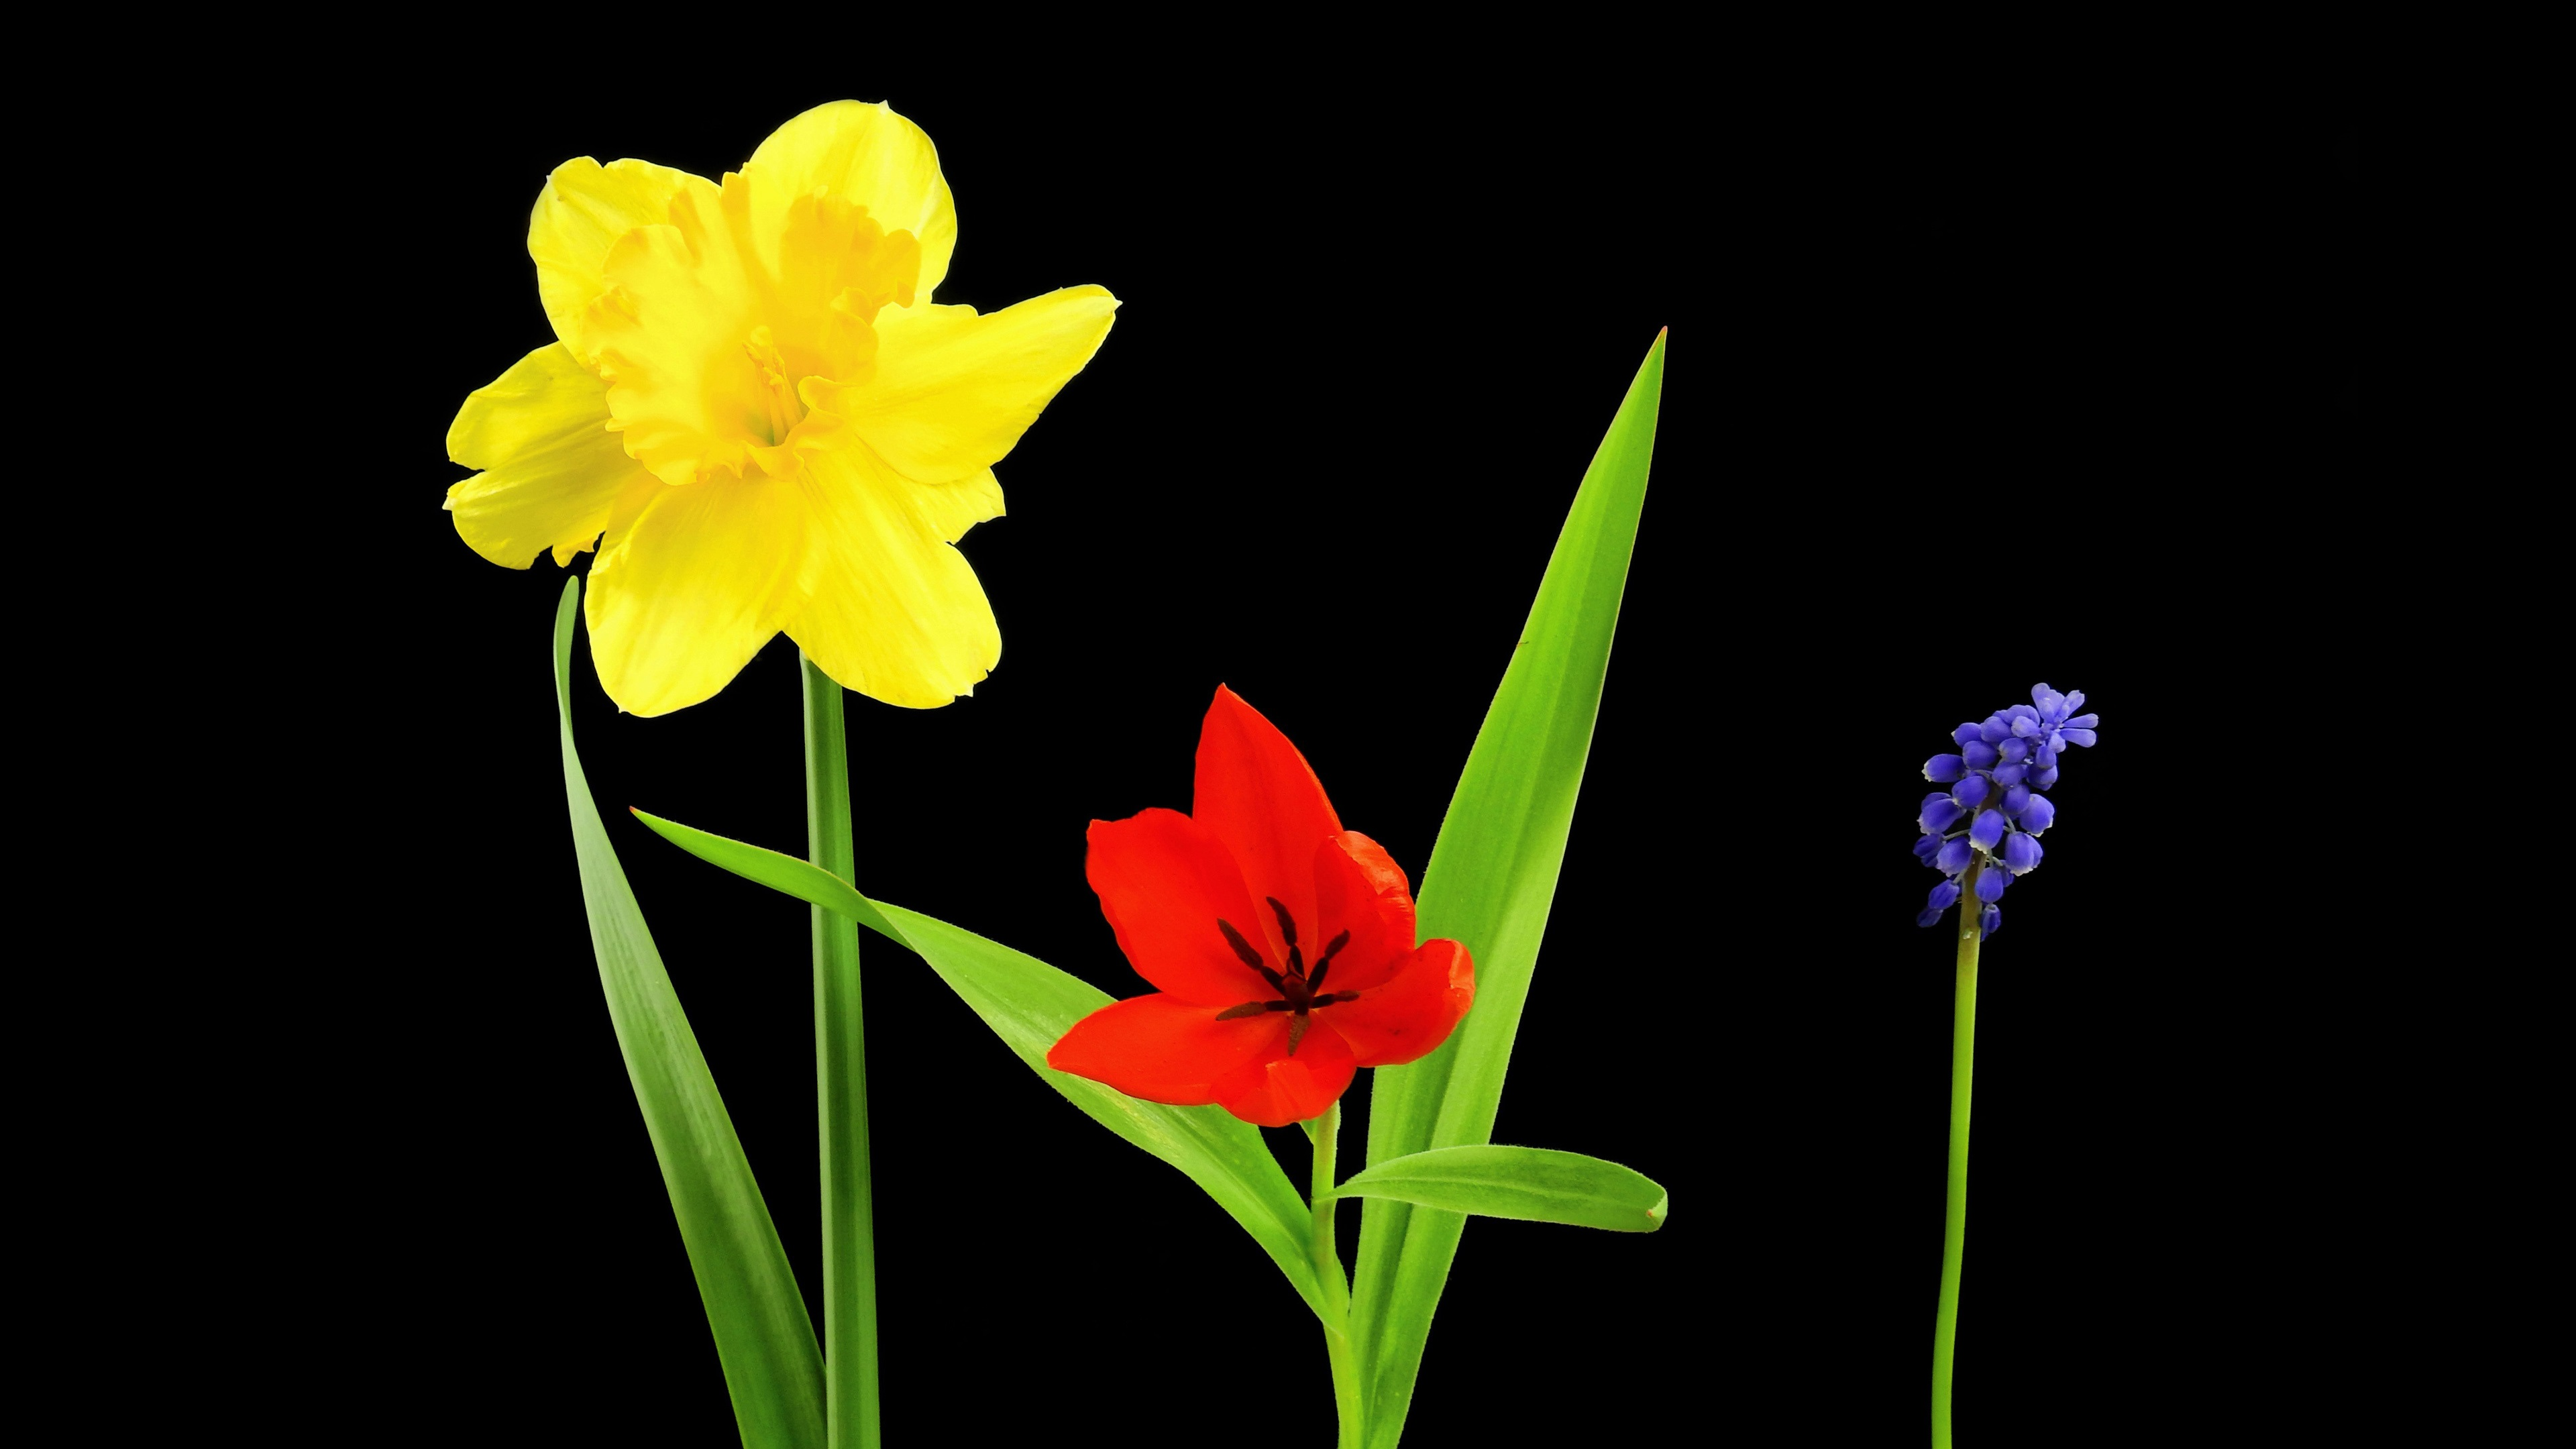 Wallpaper Yellow Narcissus Red Tulip Blue Viper Onion Flowers Black Background 3840x2160 Uhd 4k Picture Image